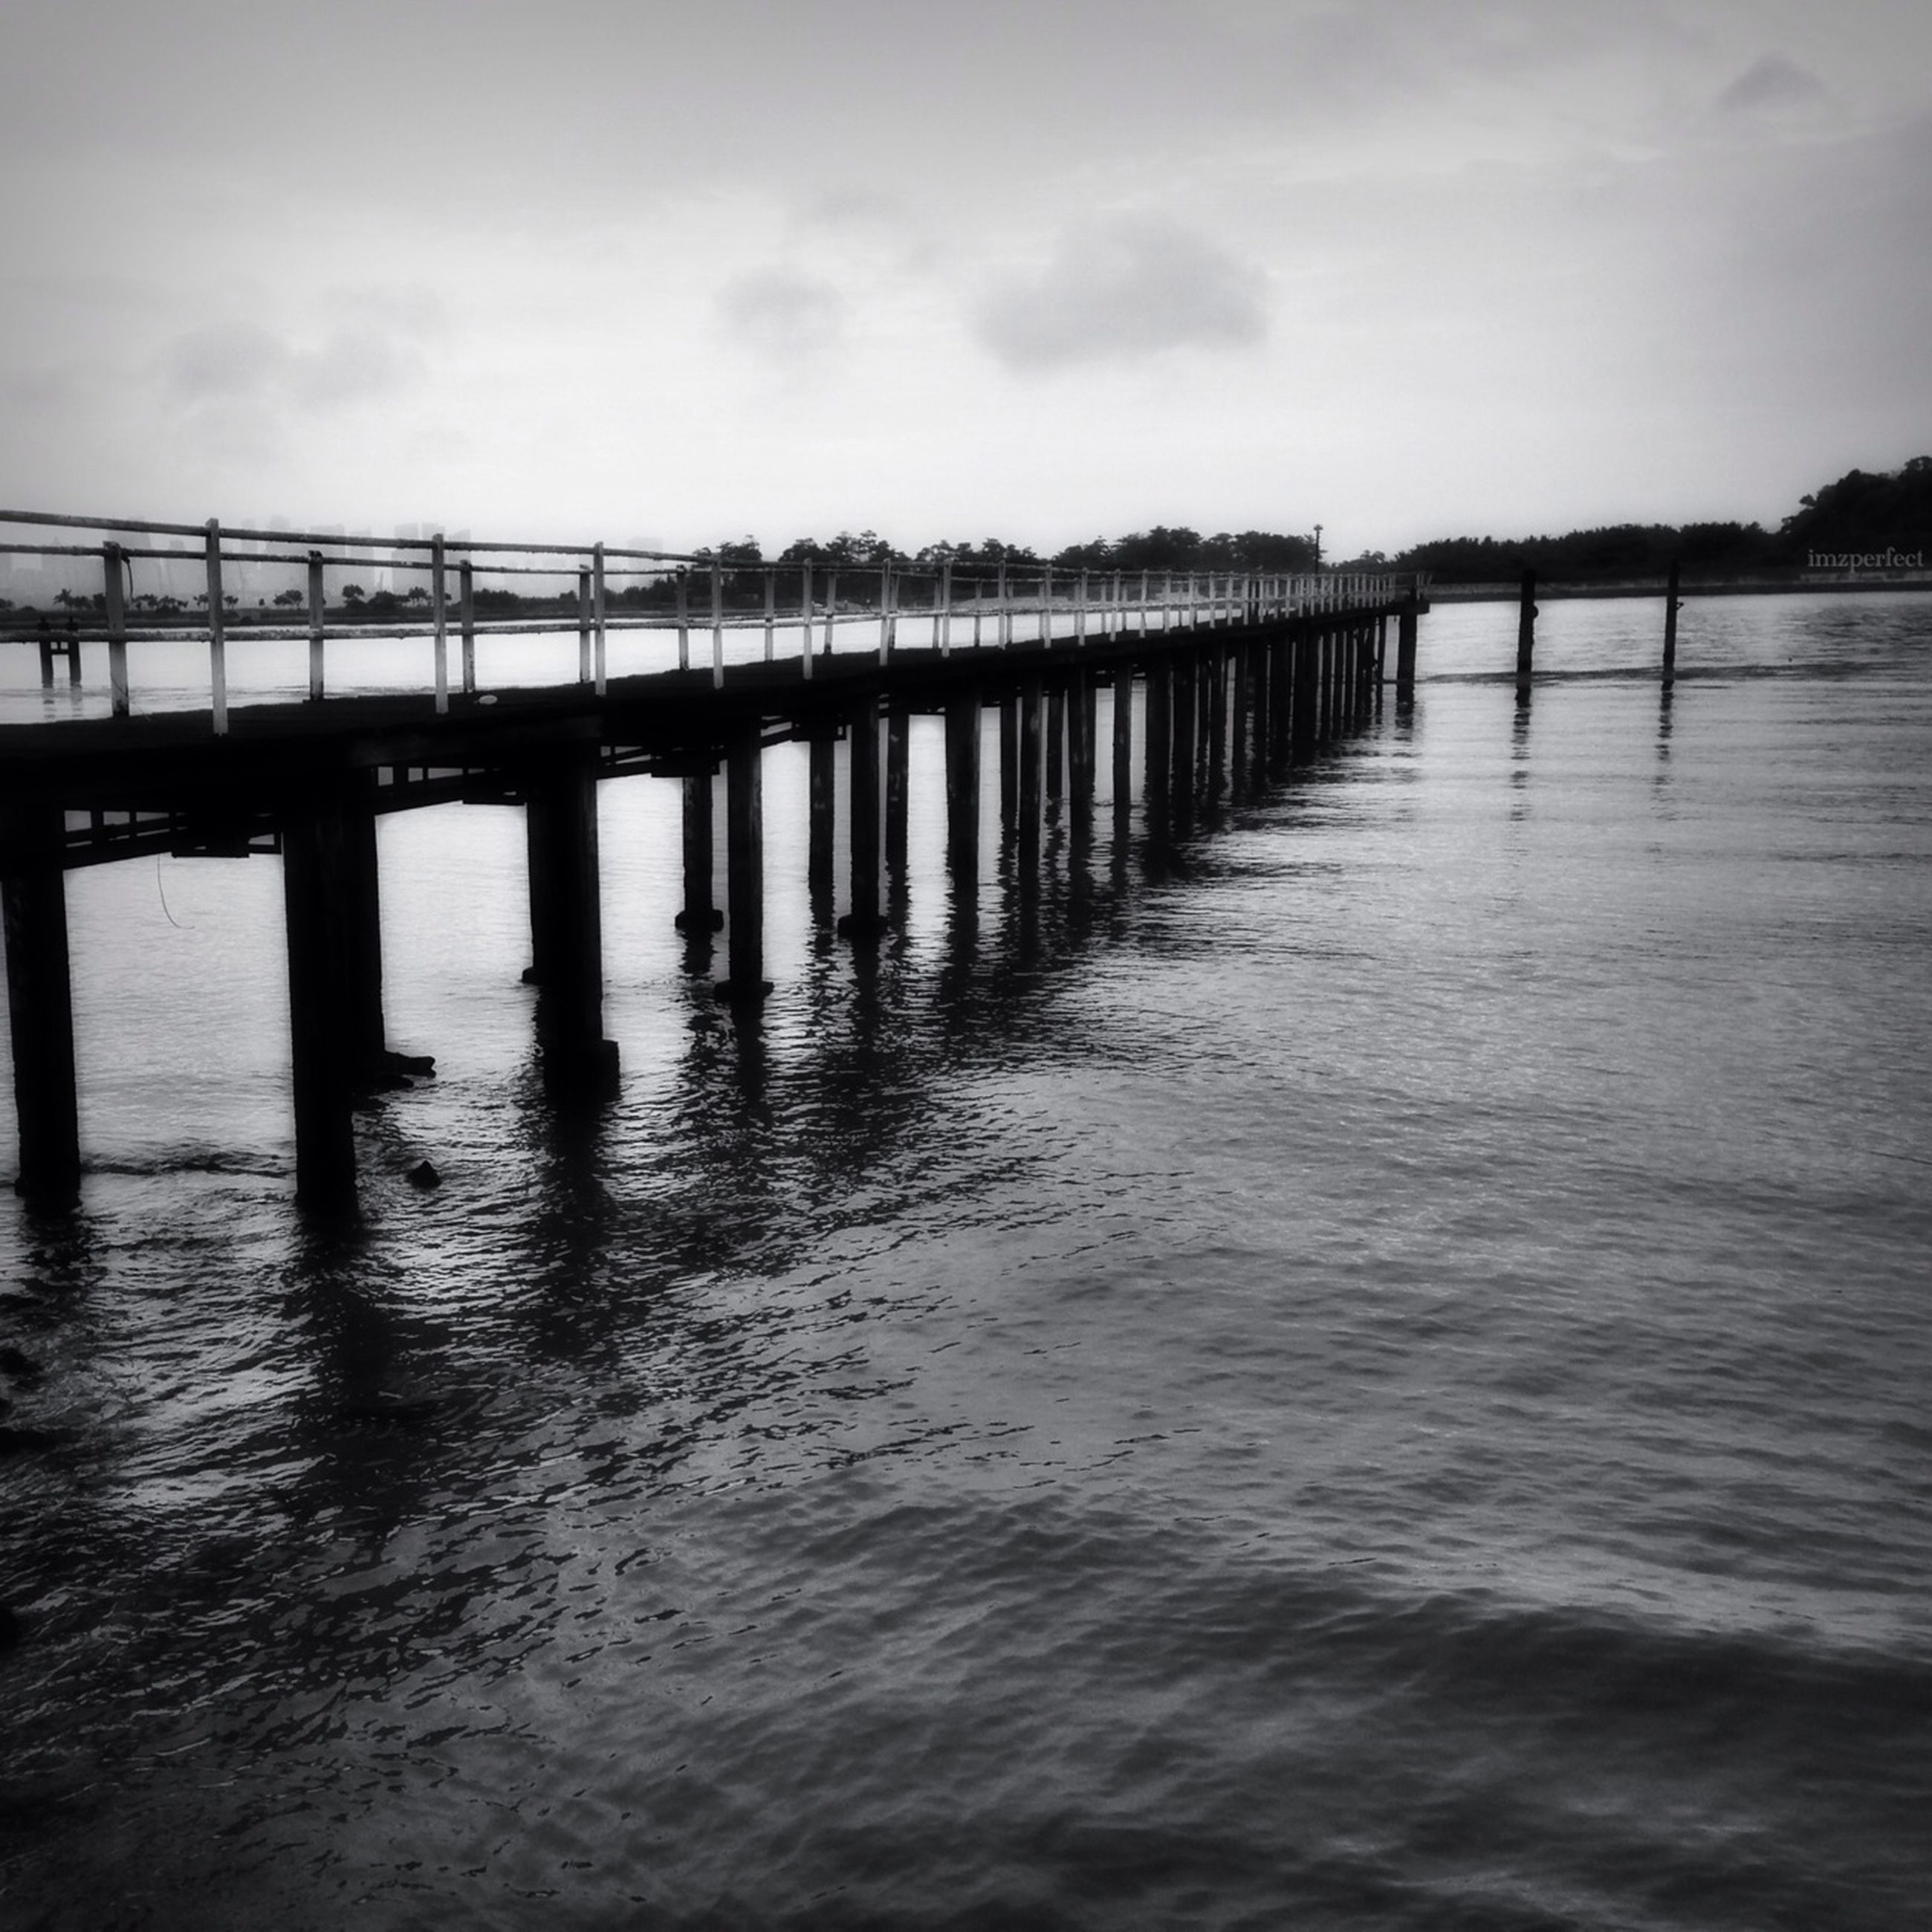 water, built structure, architecture, bridge - man made structure, connection, waterfront, sky, river, bridge, pier, reflection, sea, cloud - sky, rippled, nature, tranquility, engineering, no people, outdoors, railing